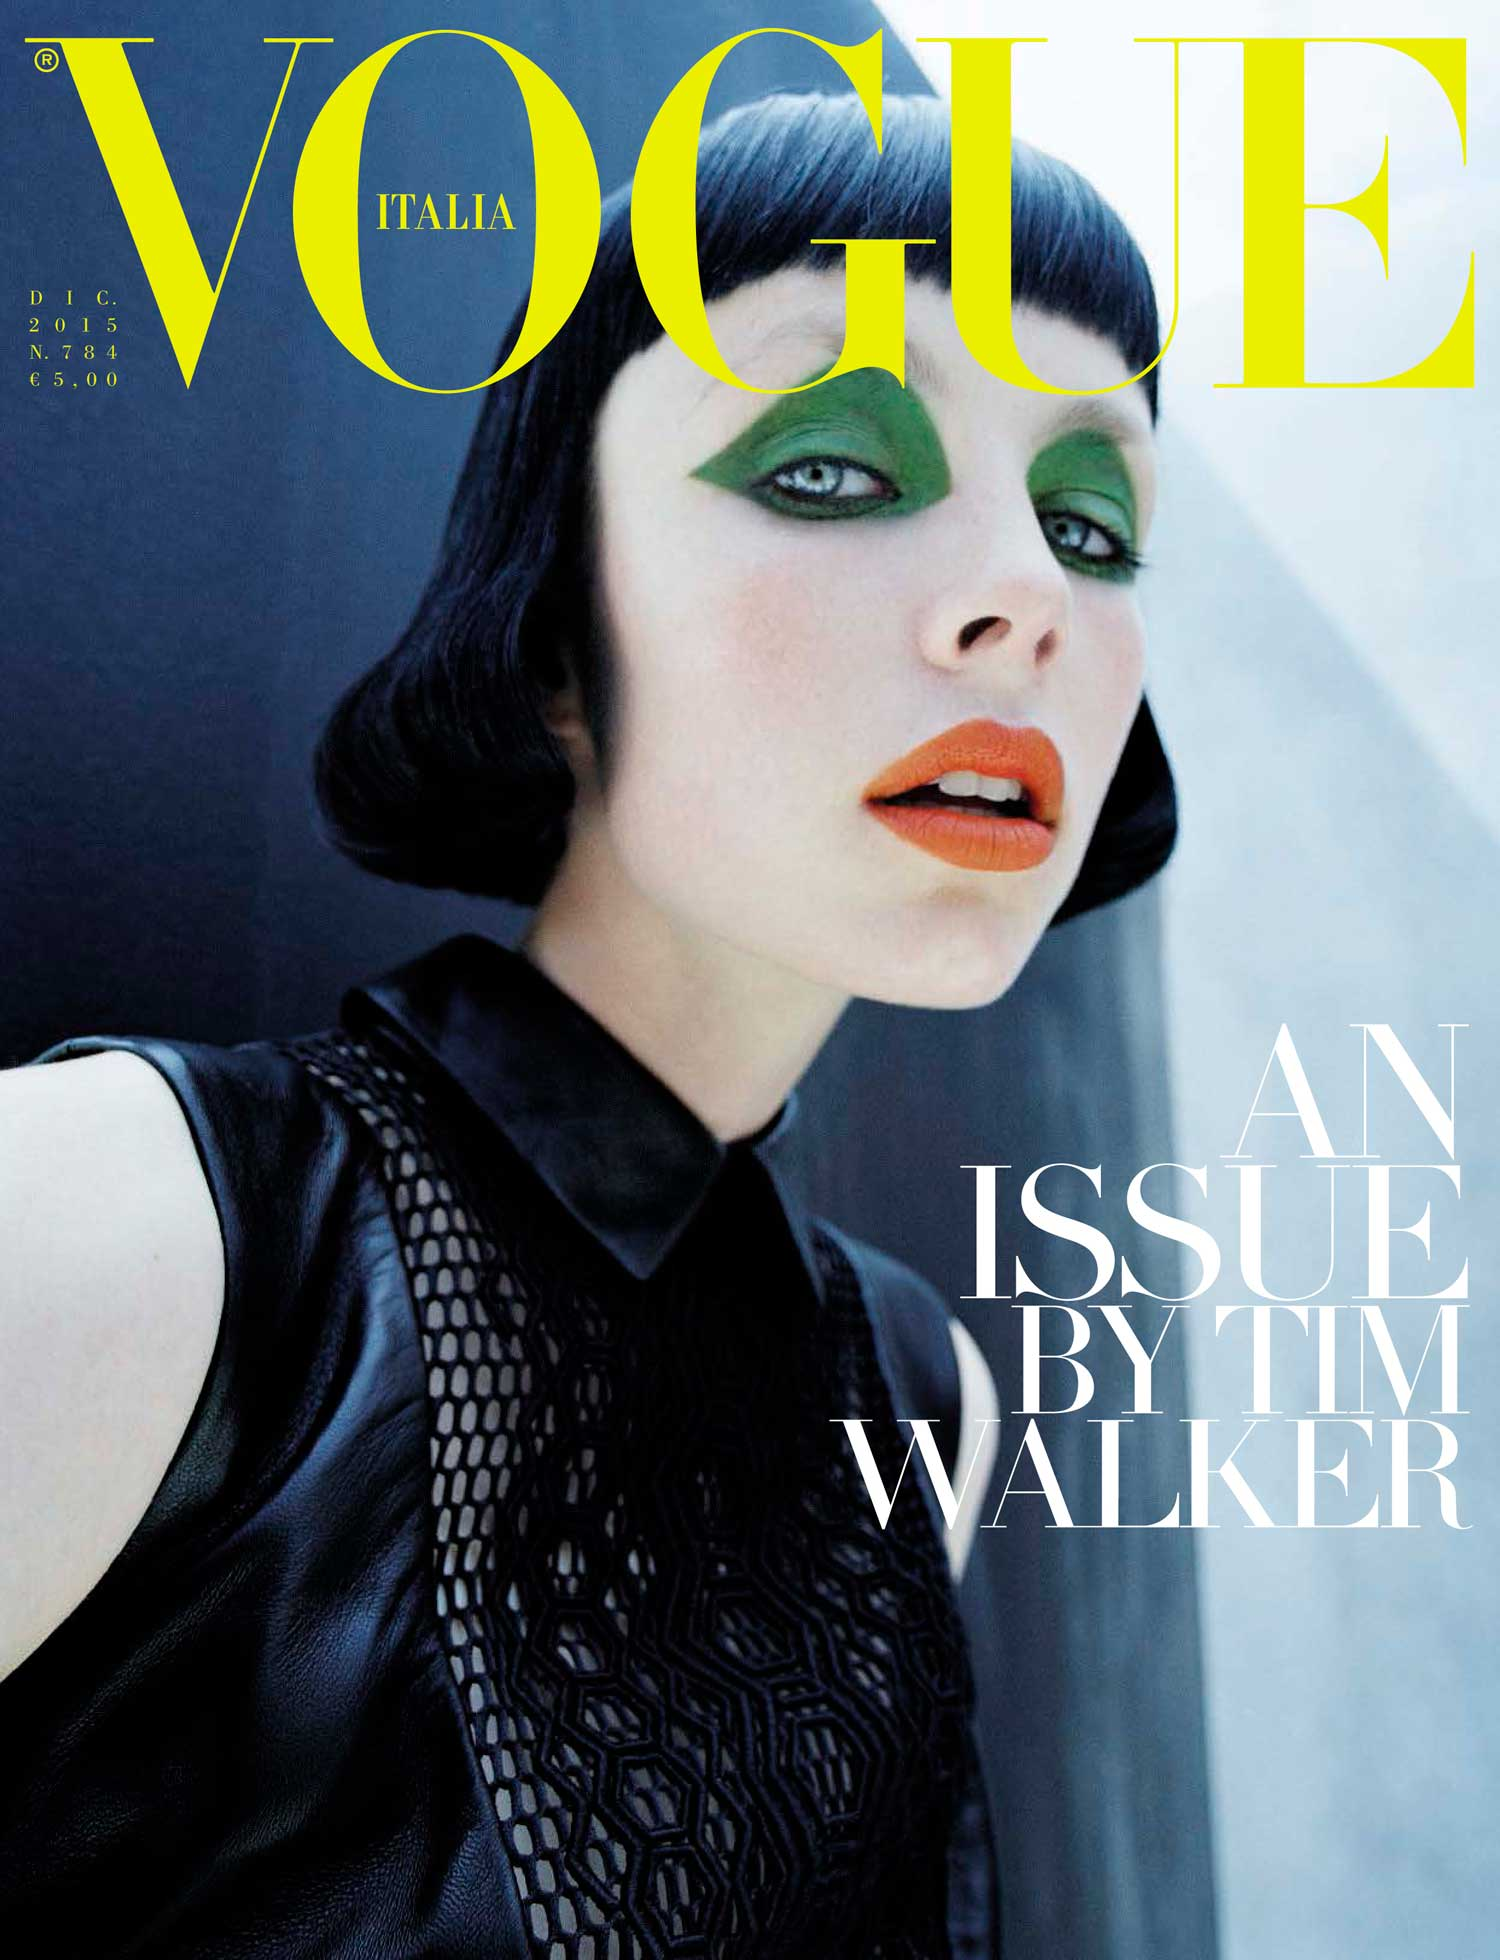 Check-Mate by Tim Walker, Vogue Italia | Yellowtrace